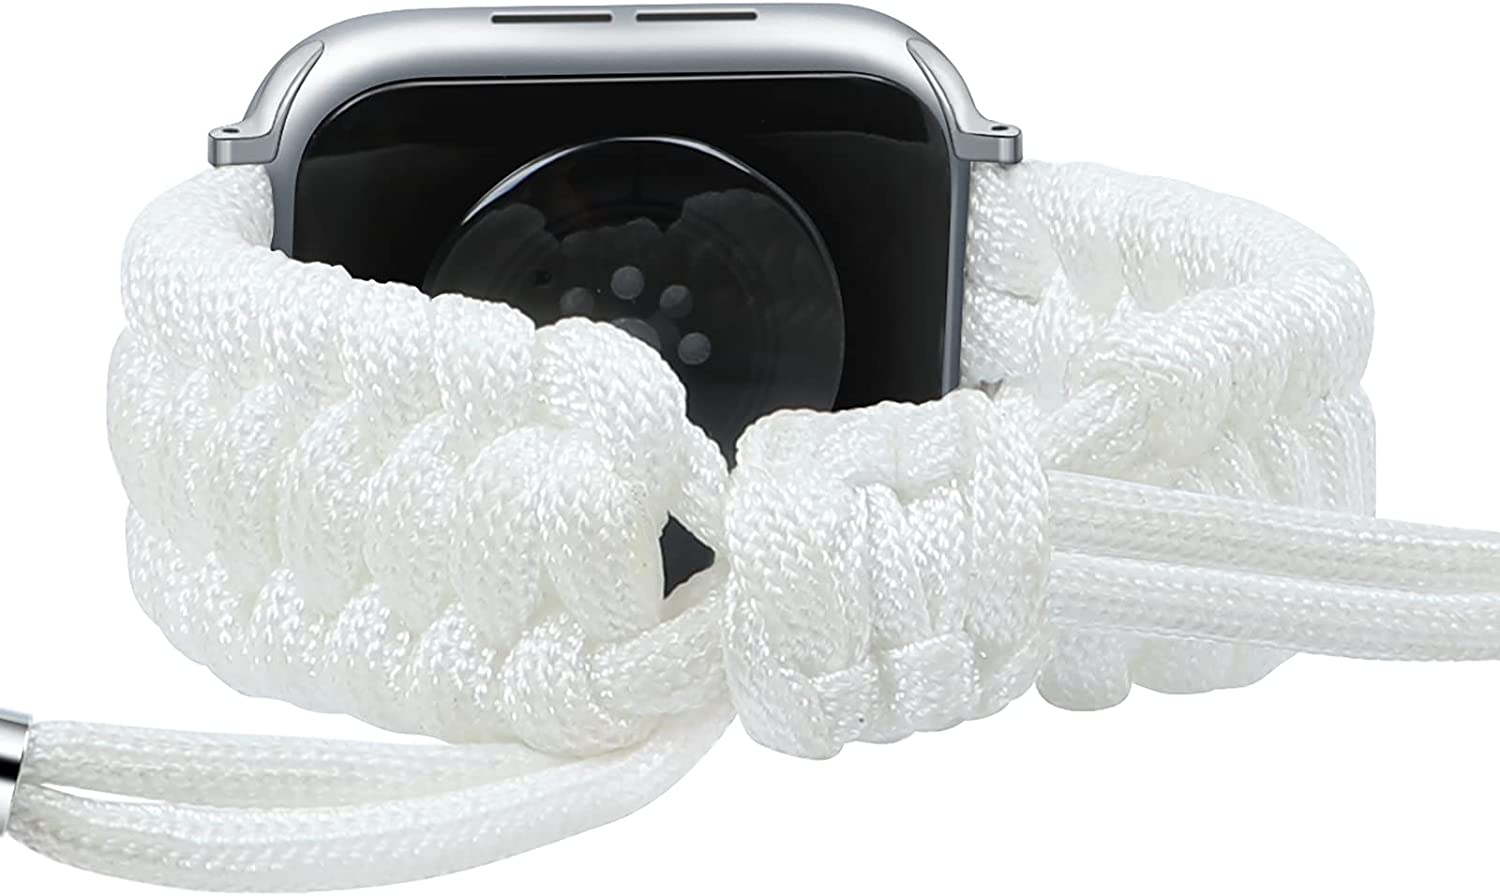 Fun Gaau NylonBraided compatible White AppleWatchBand 38mm 40mm Paracord Adjustable Woven Strap for iwatch Series 6/5/4/3/2/1 Replacement Wristband